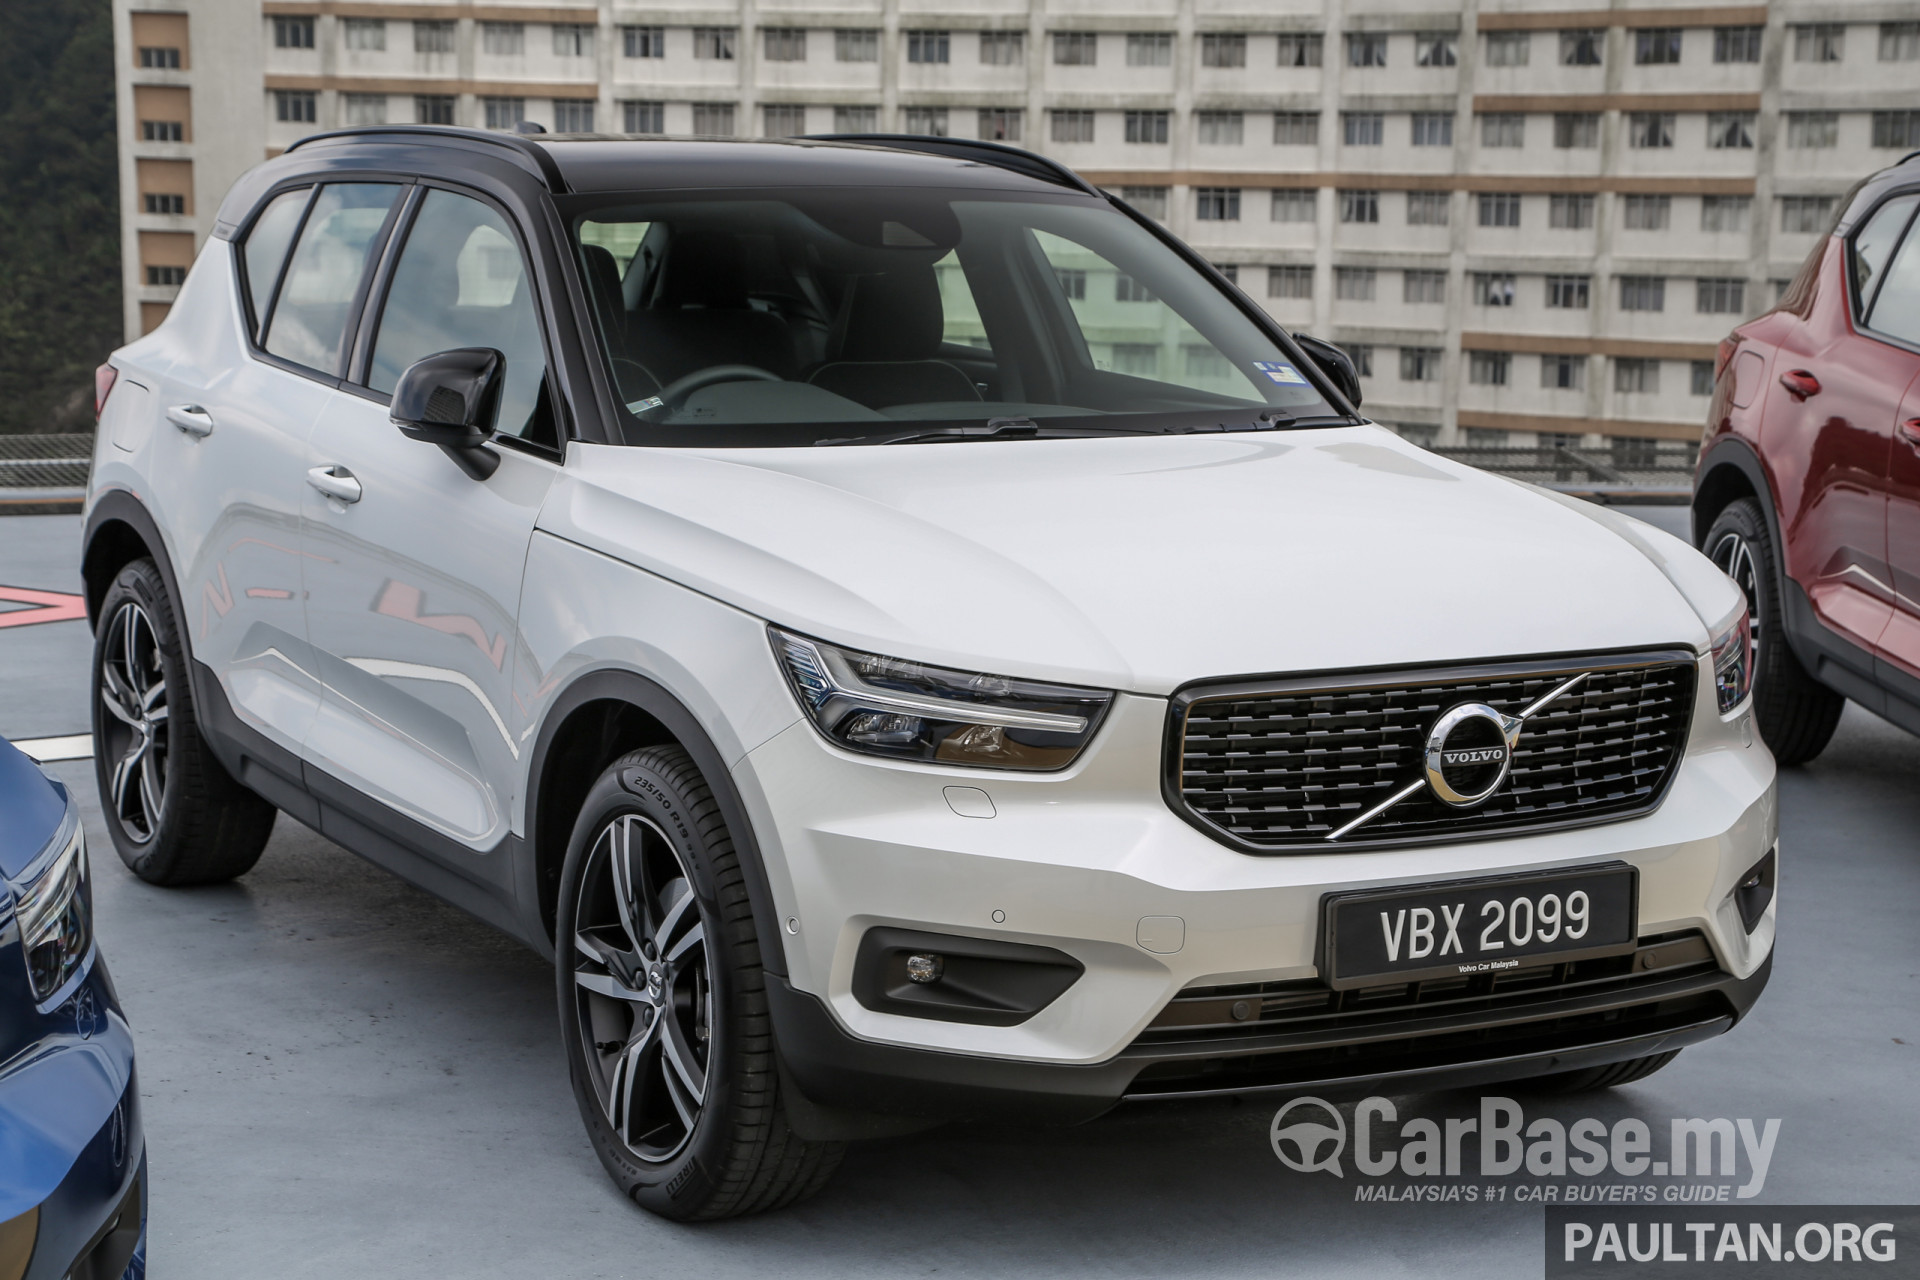 Volvo Xc40 Mk1 2018 Exterior Image 51636 In Malaysia Reviews